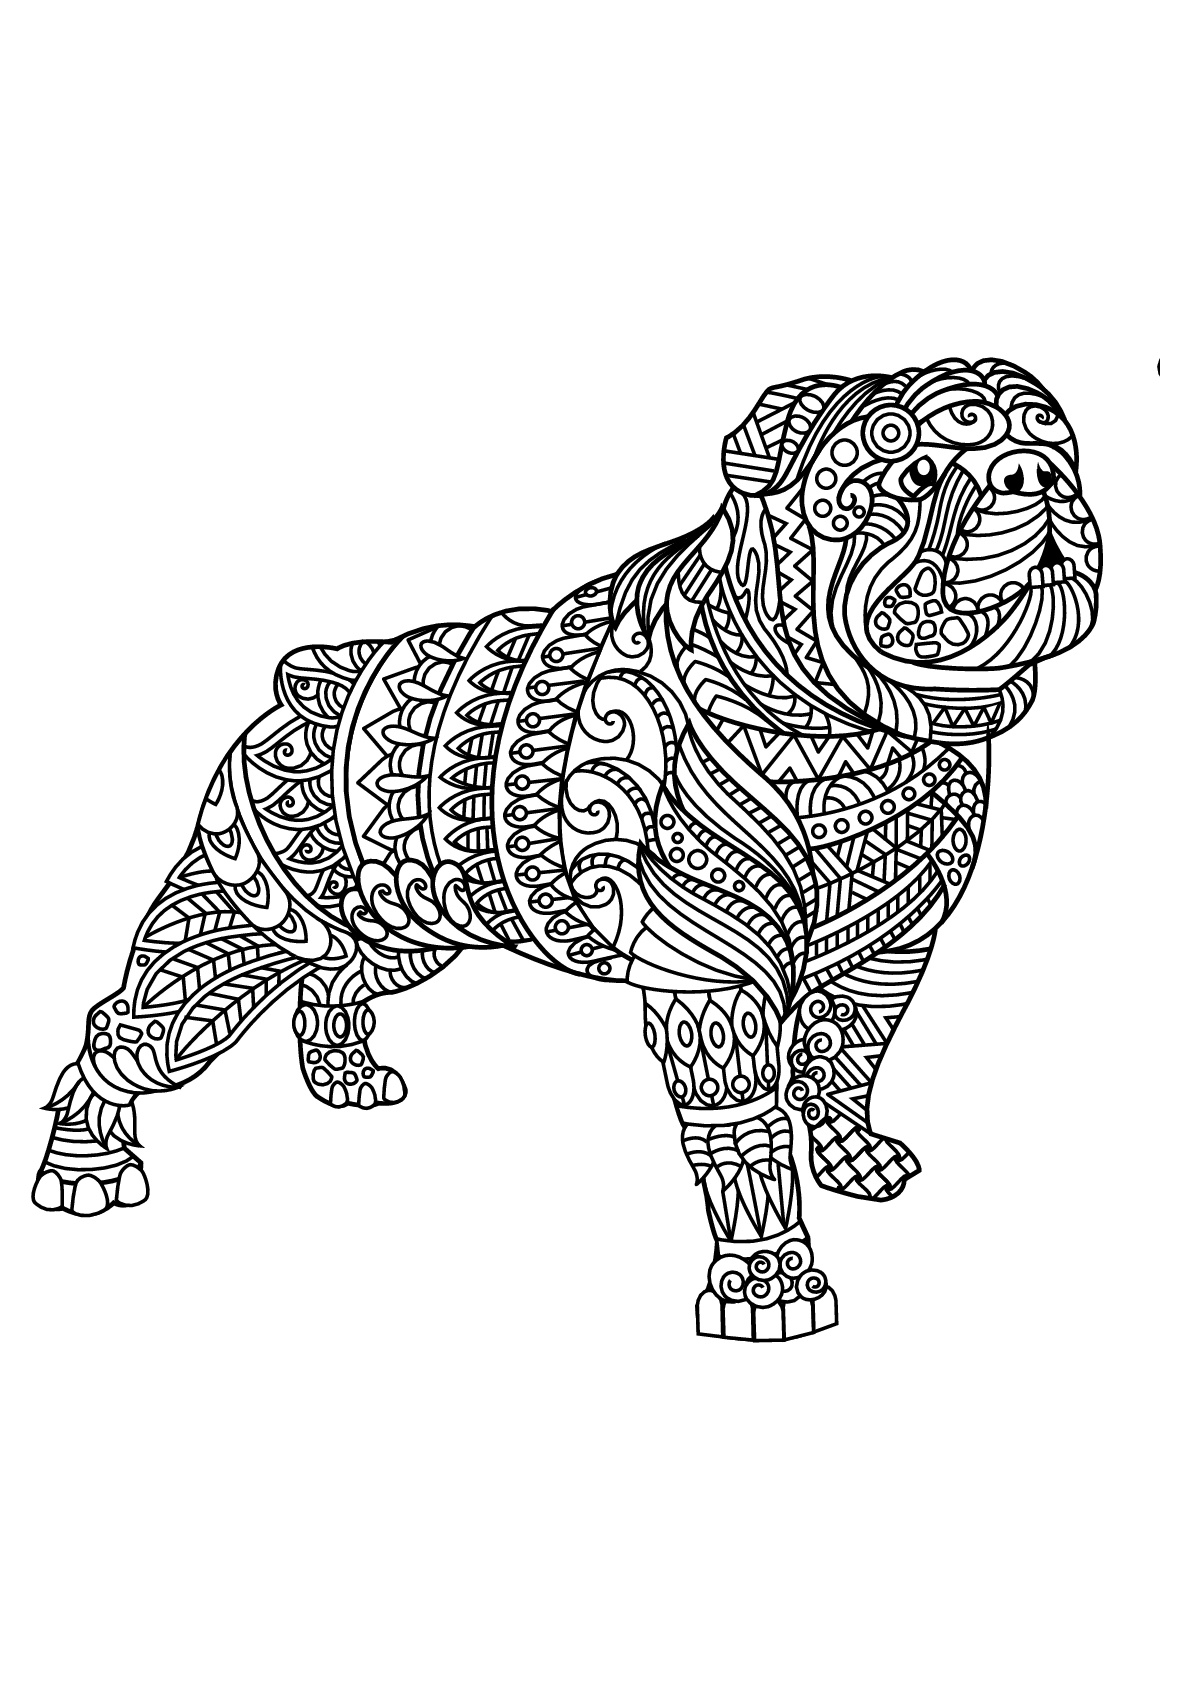 Dogs to download for free - Dogs Kids Coloring Pages